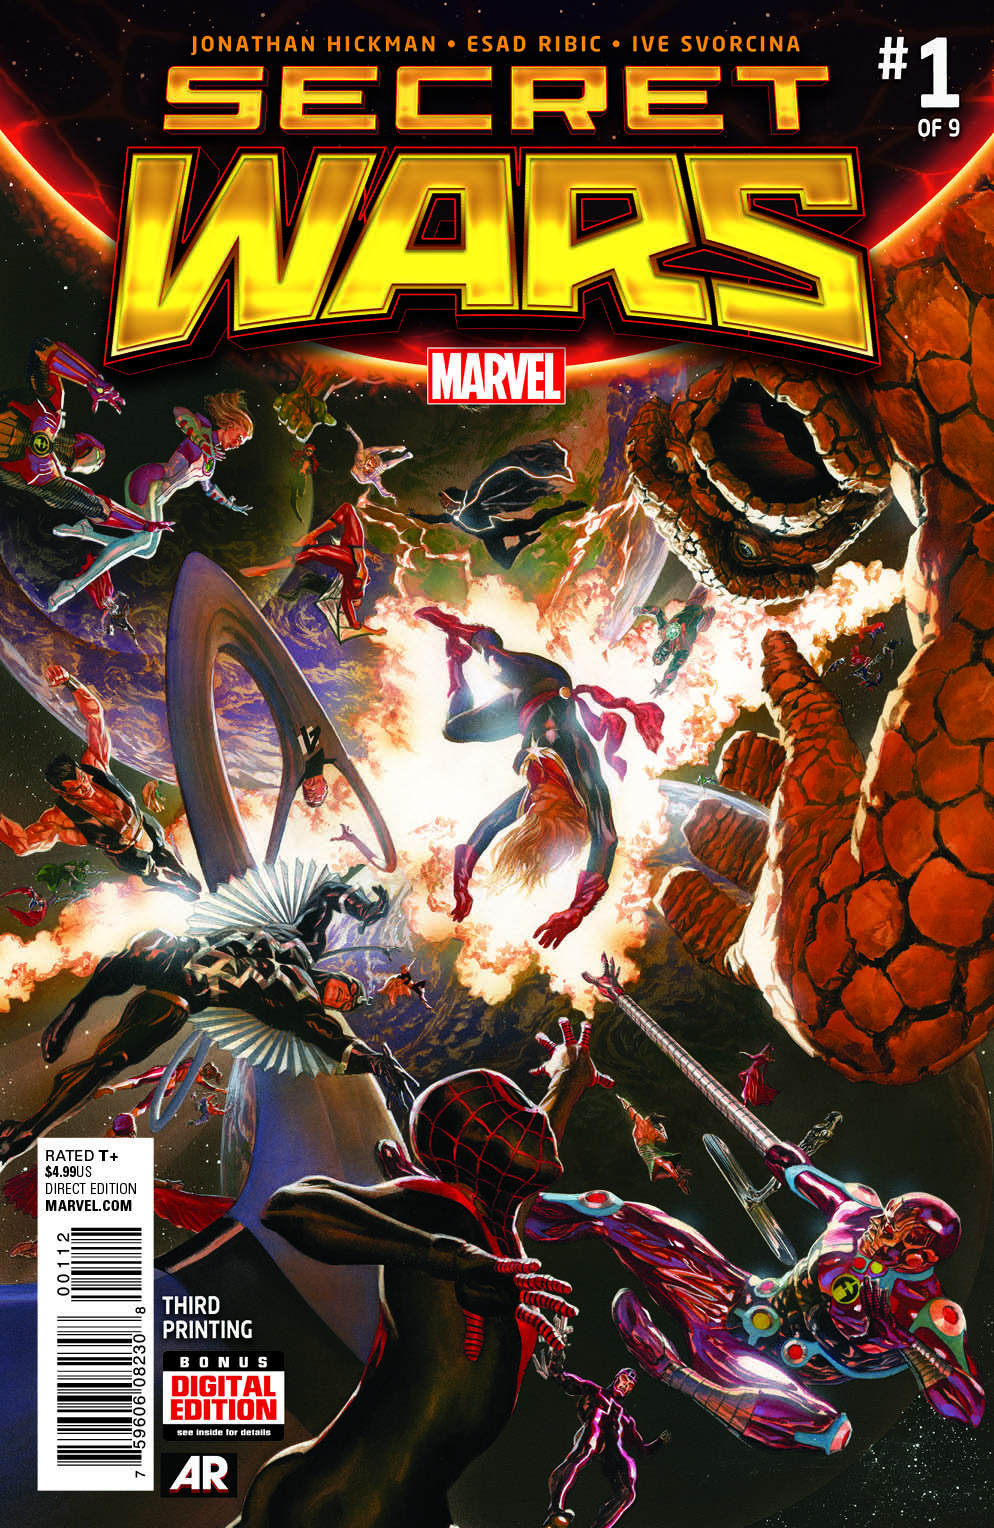 SECRET WARS #1 (OF 9) ROSS 3RD PTG VAR